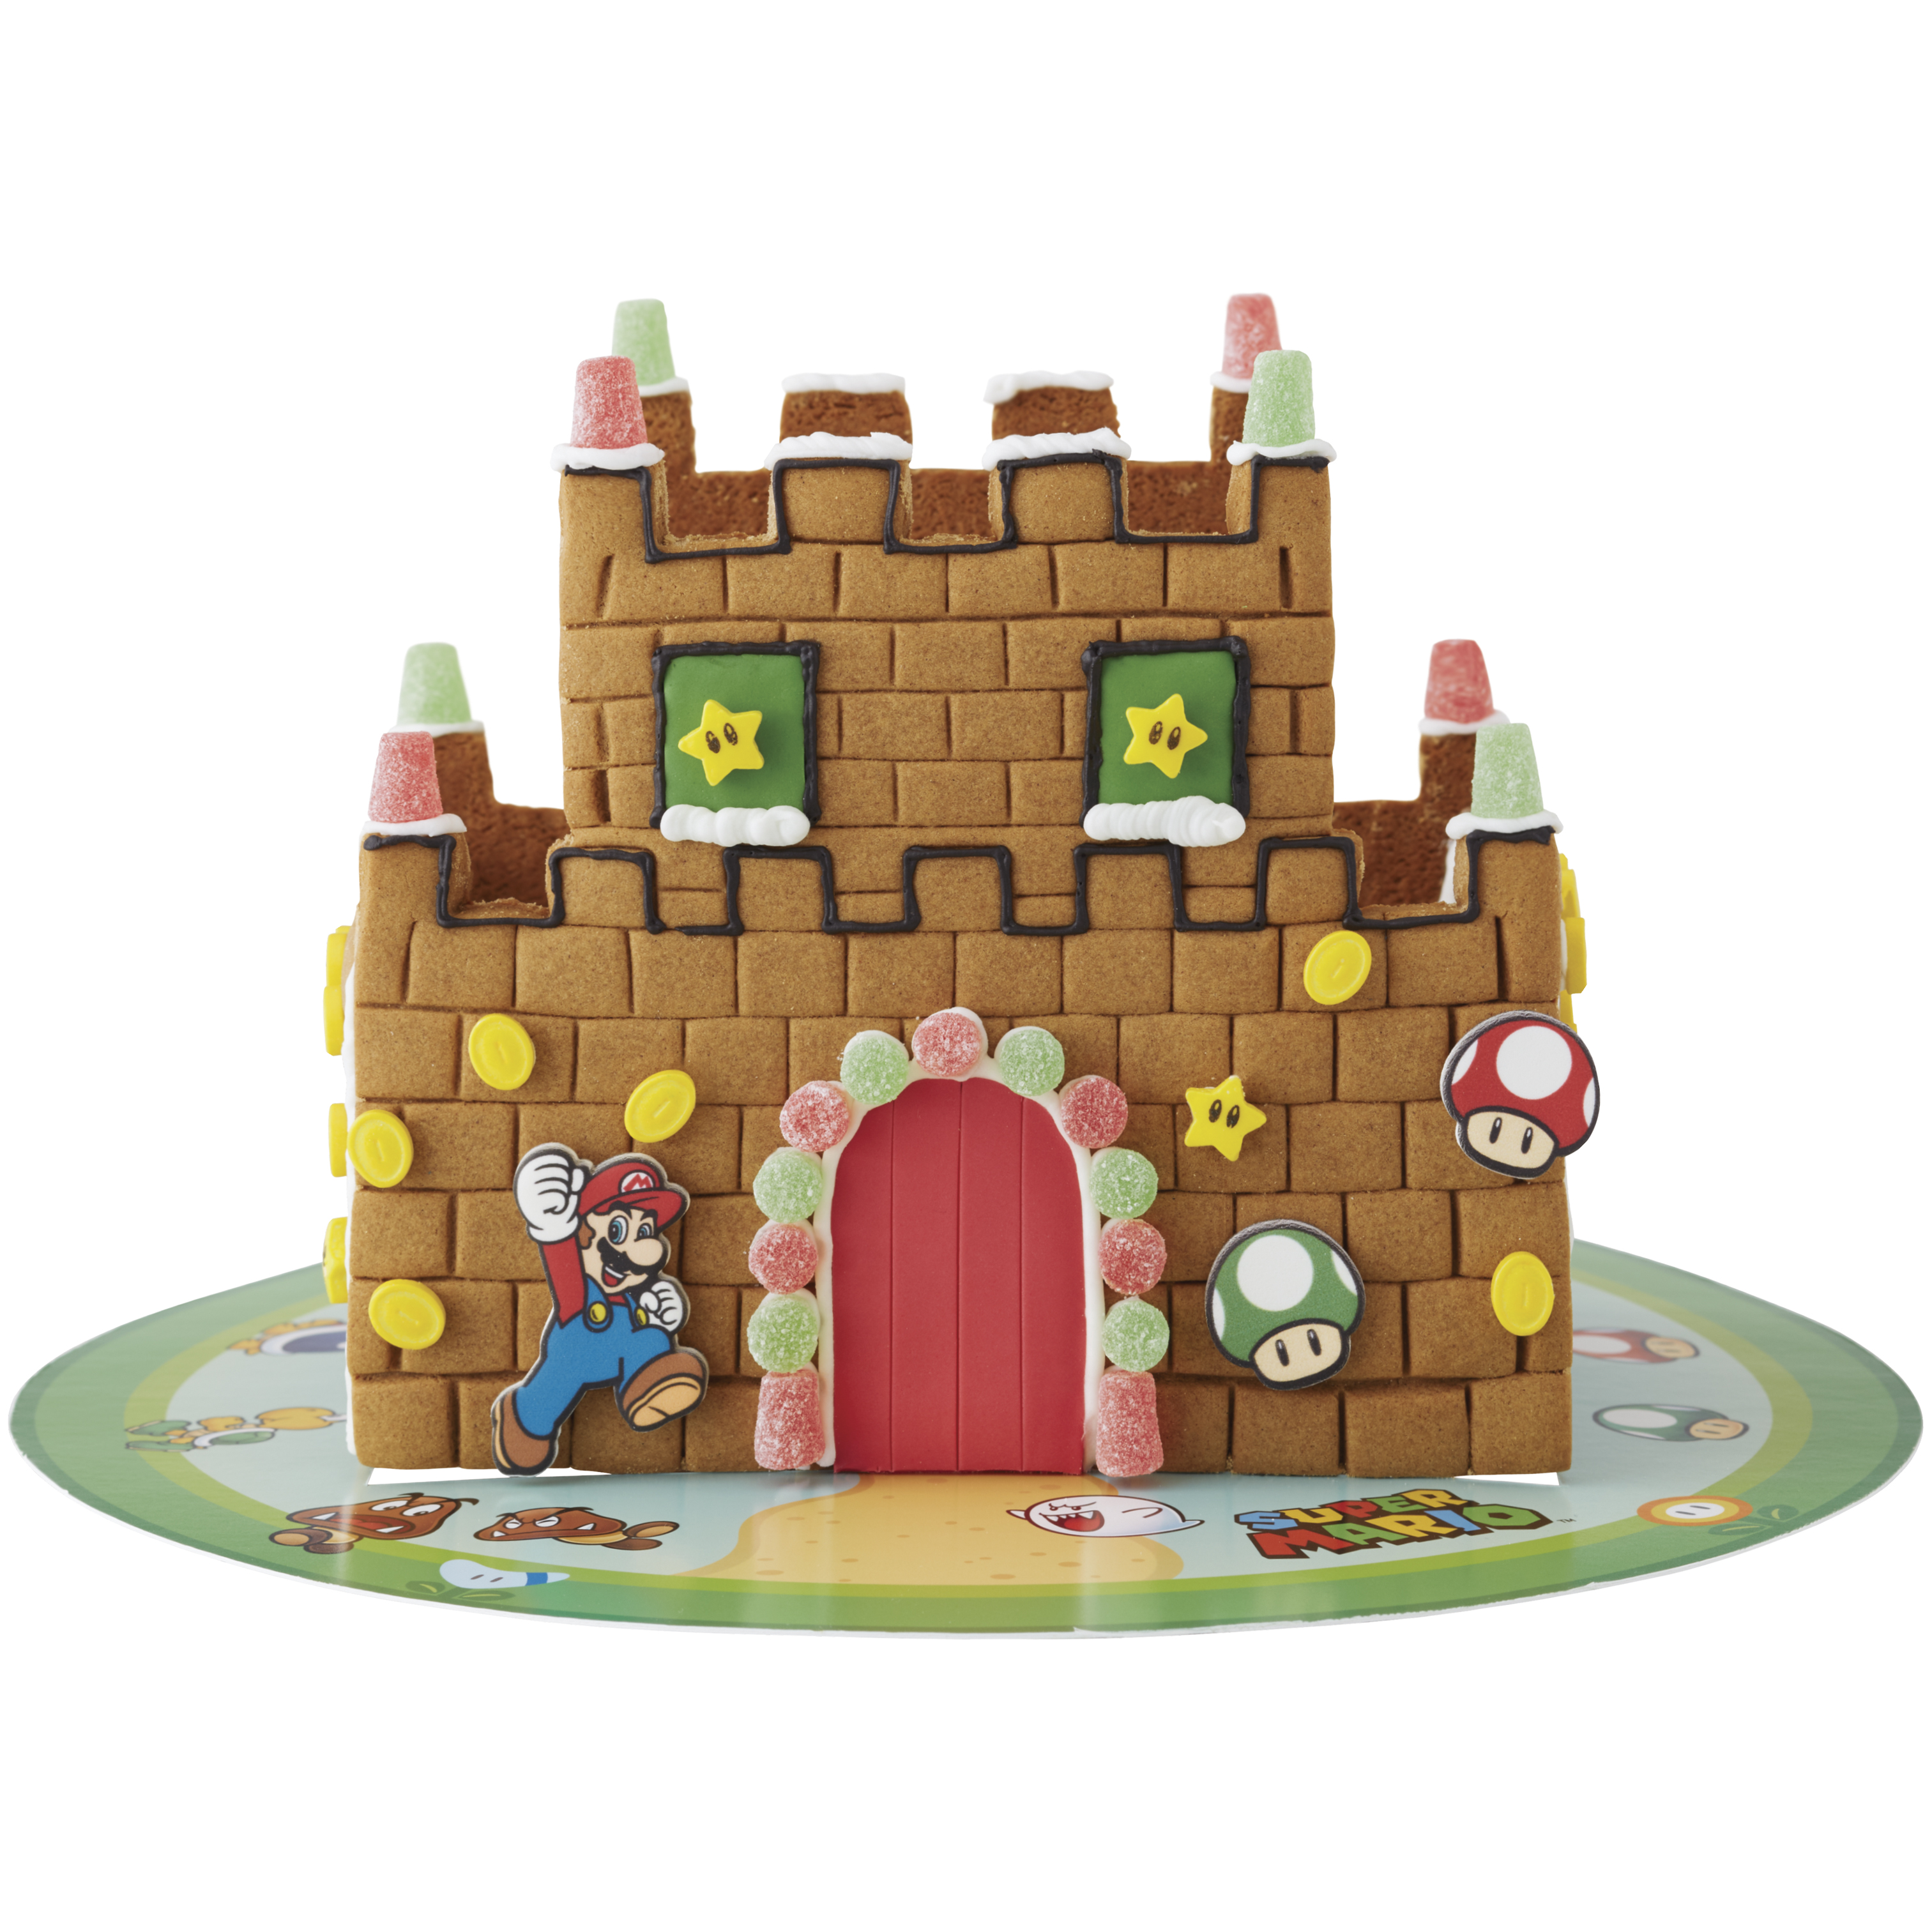 Walmart selling Super Mario Bros. Gingerbread Castle Kit | PerezStart